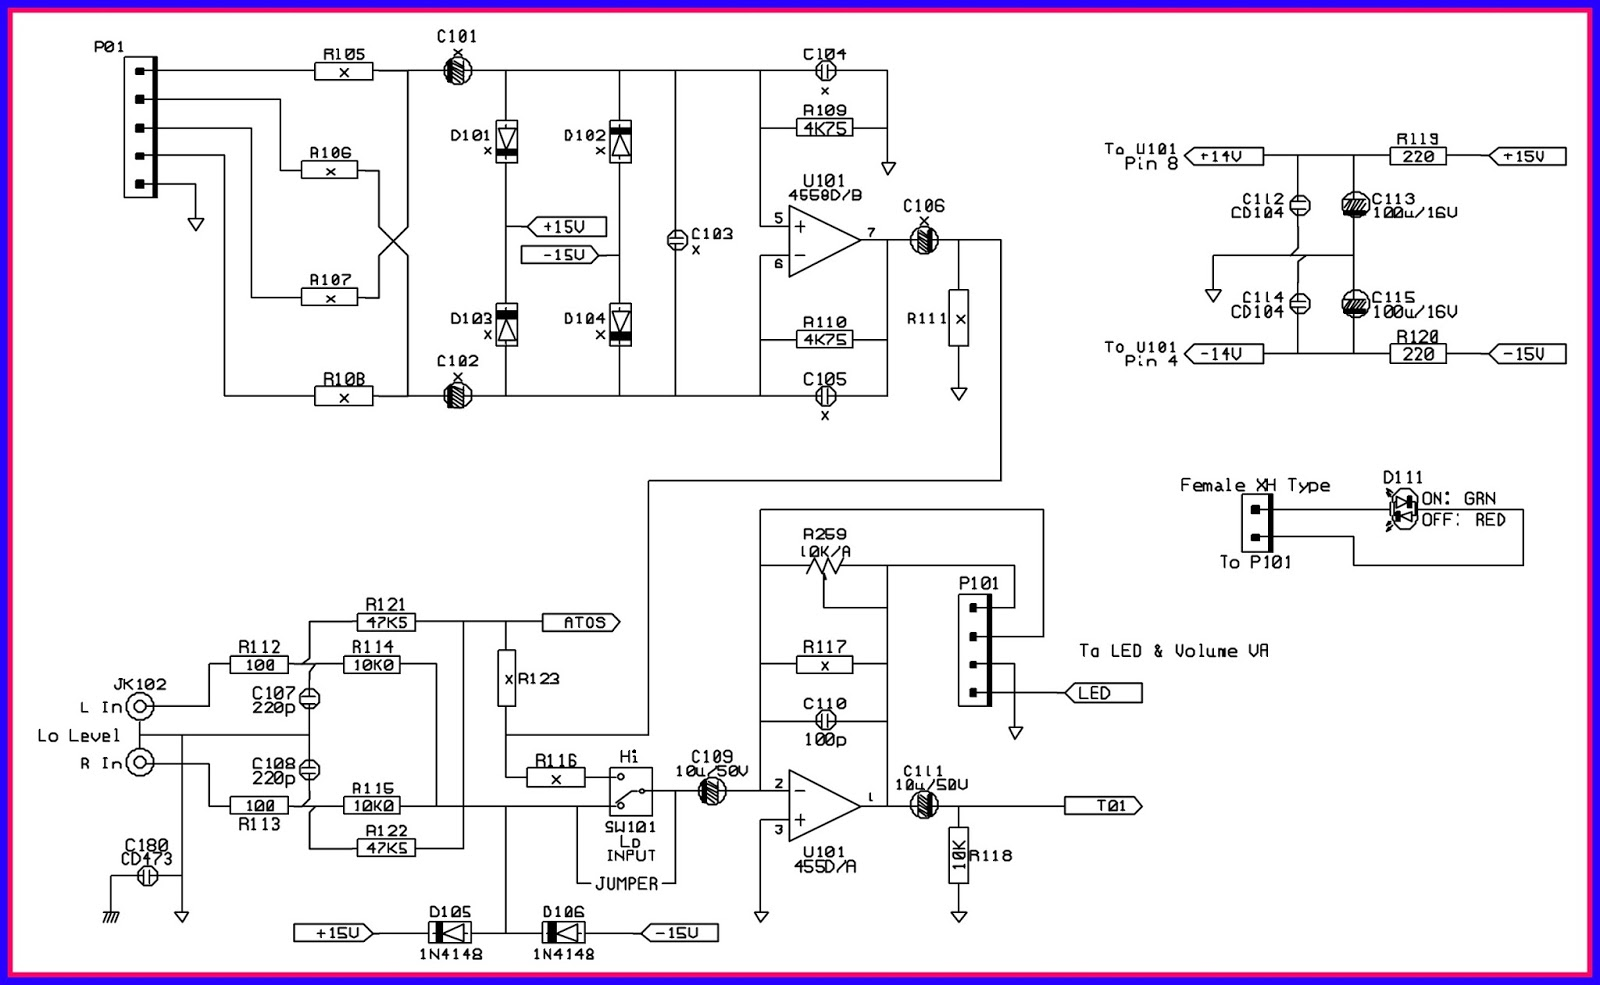 medium resolution of sub woofer circuit woofer circuit diagram active crossover circuit active bandpass filter circuit active noise cancellation